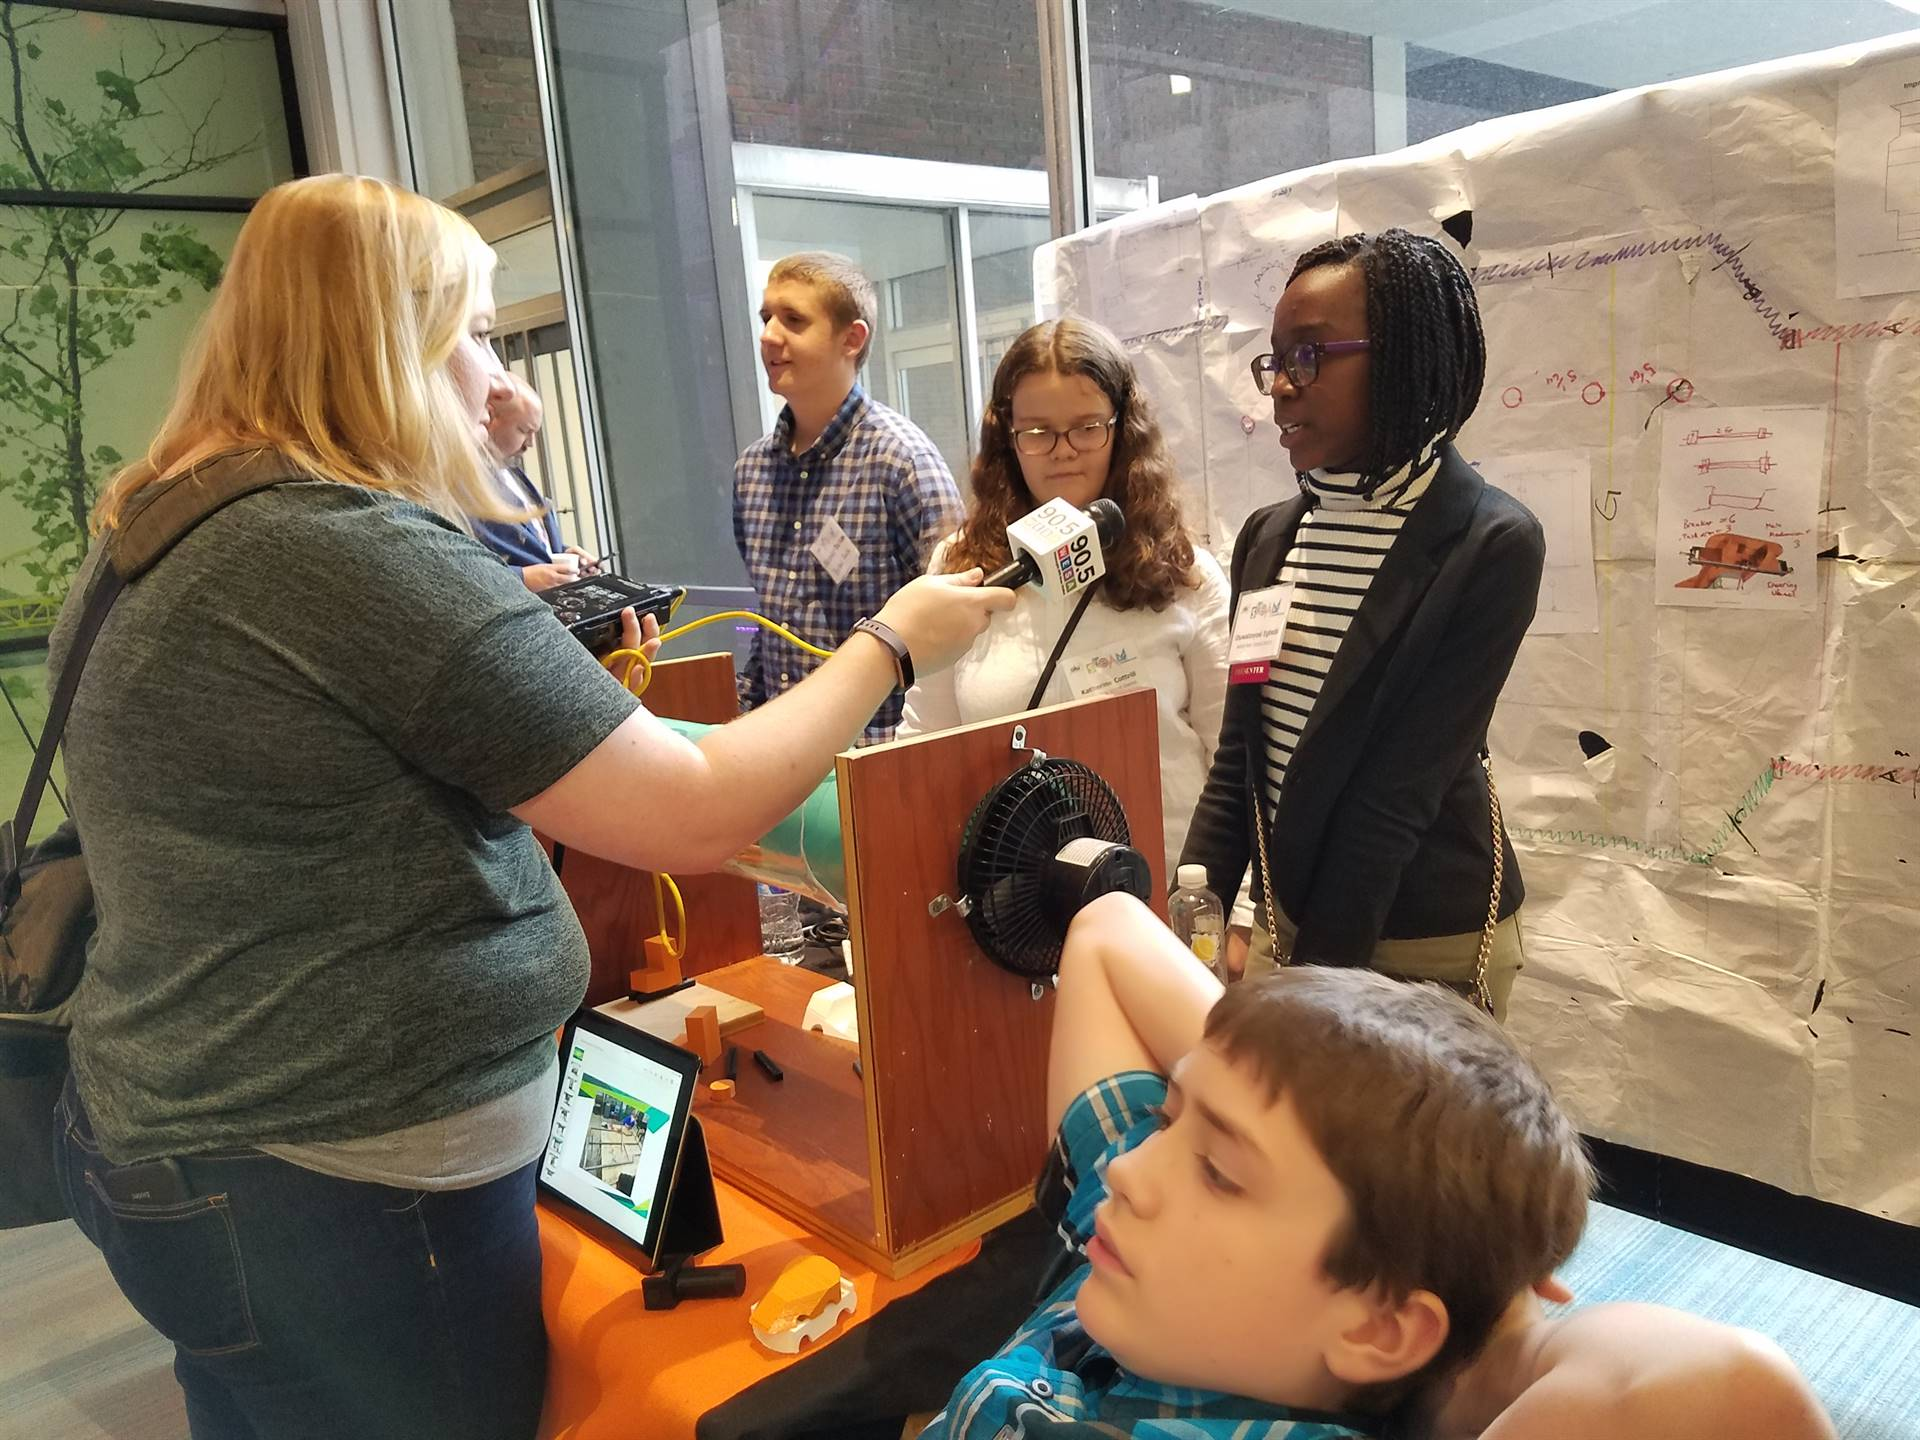 Students at the Steam Showcase 2017 being interviewed by WESA - our local NPR radio station